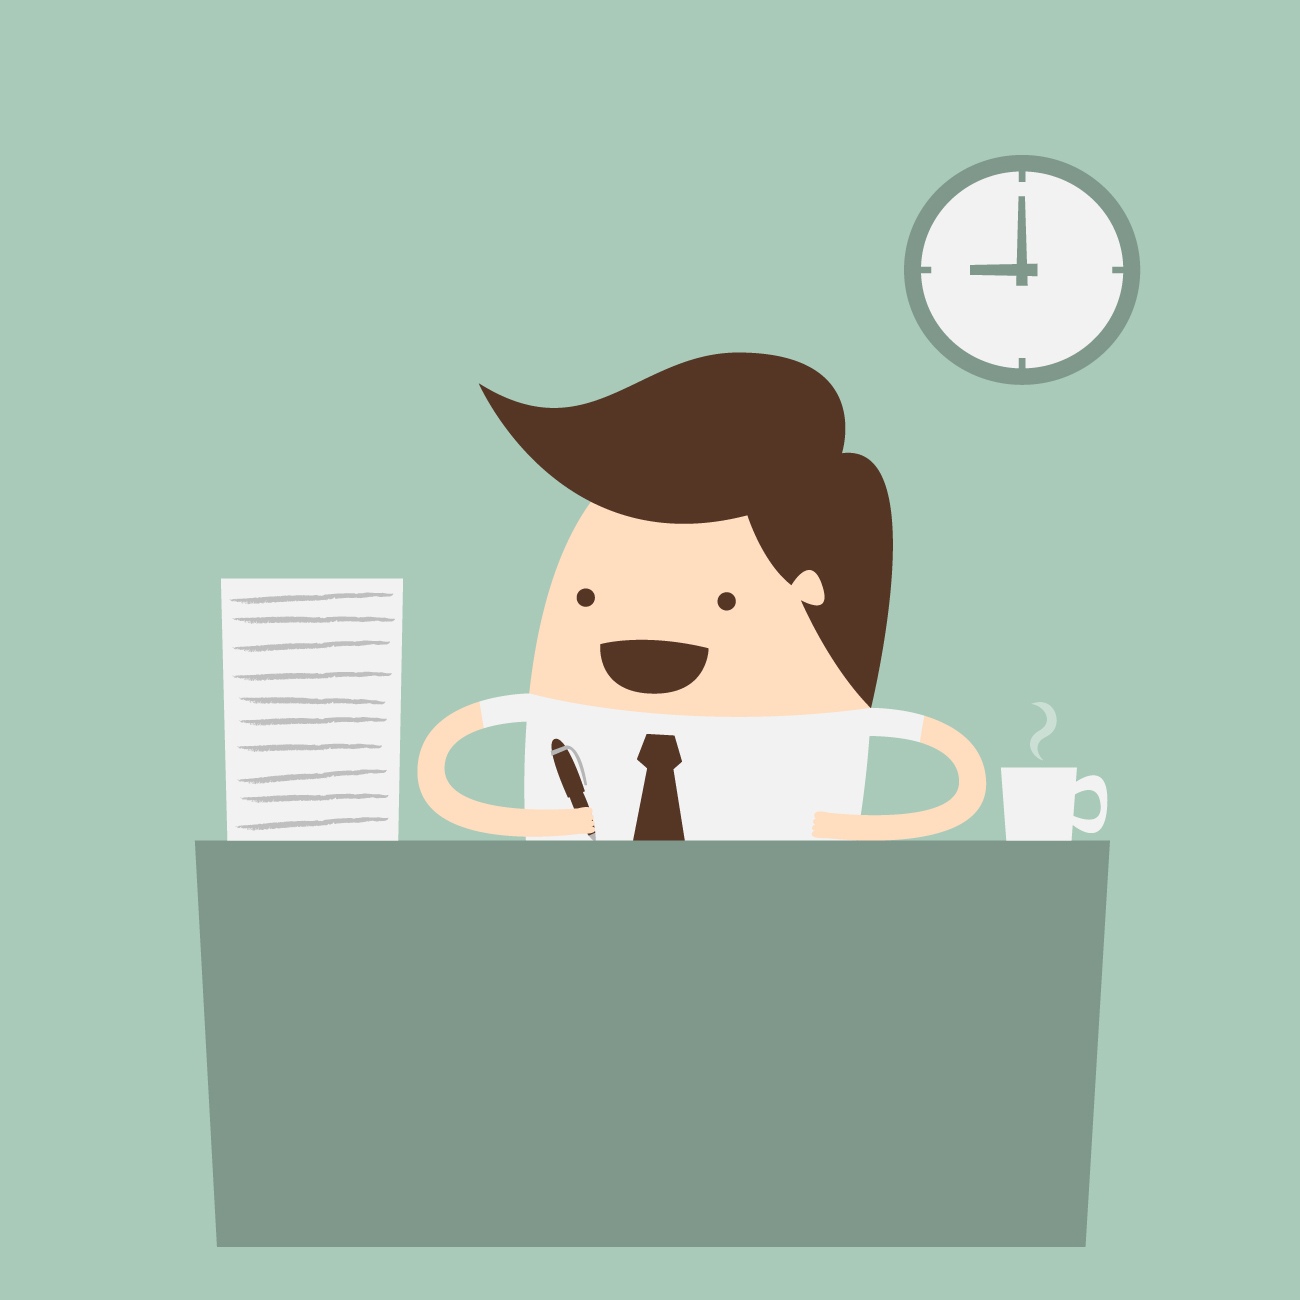 How To Solve Potential Problems When Working From Home